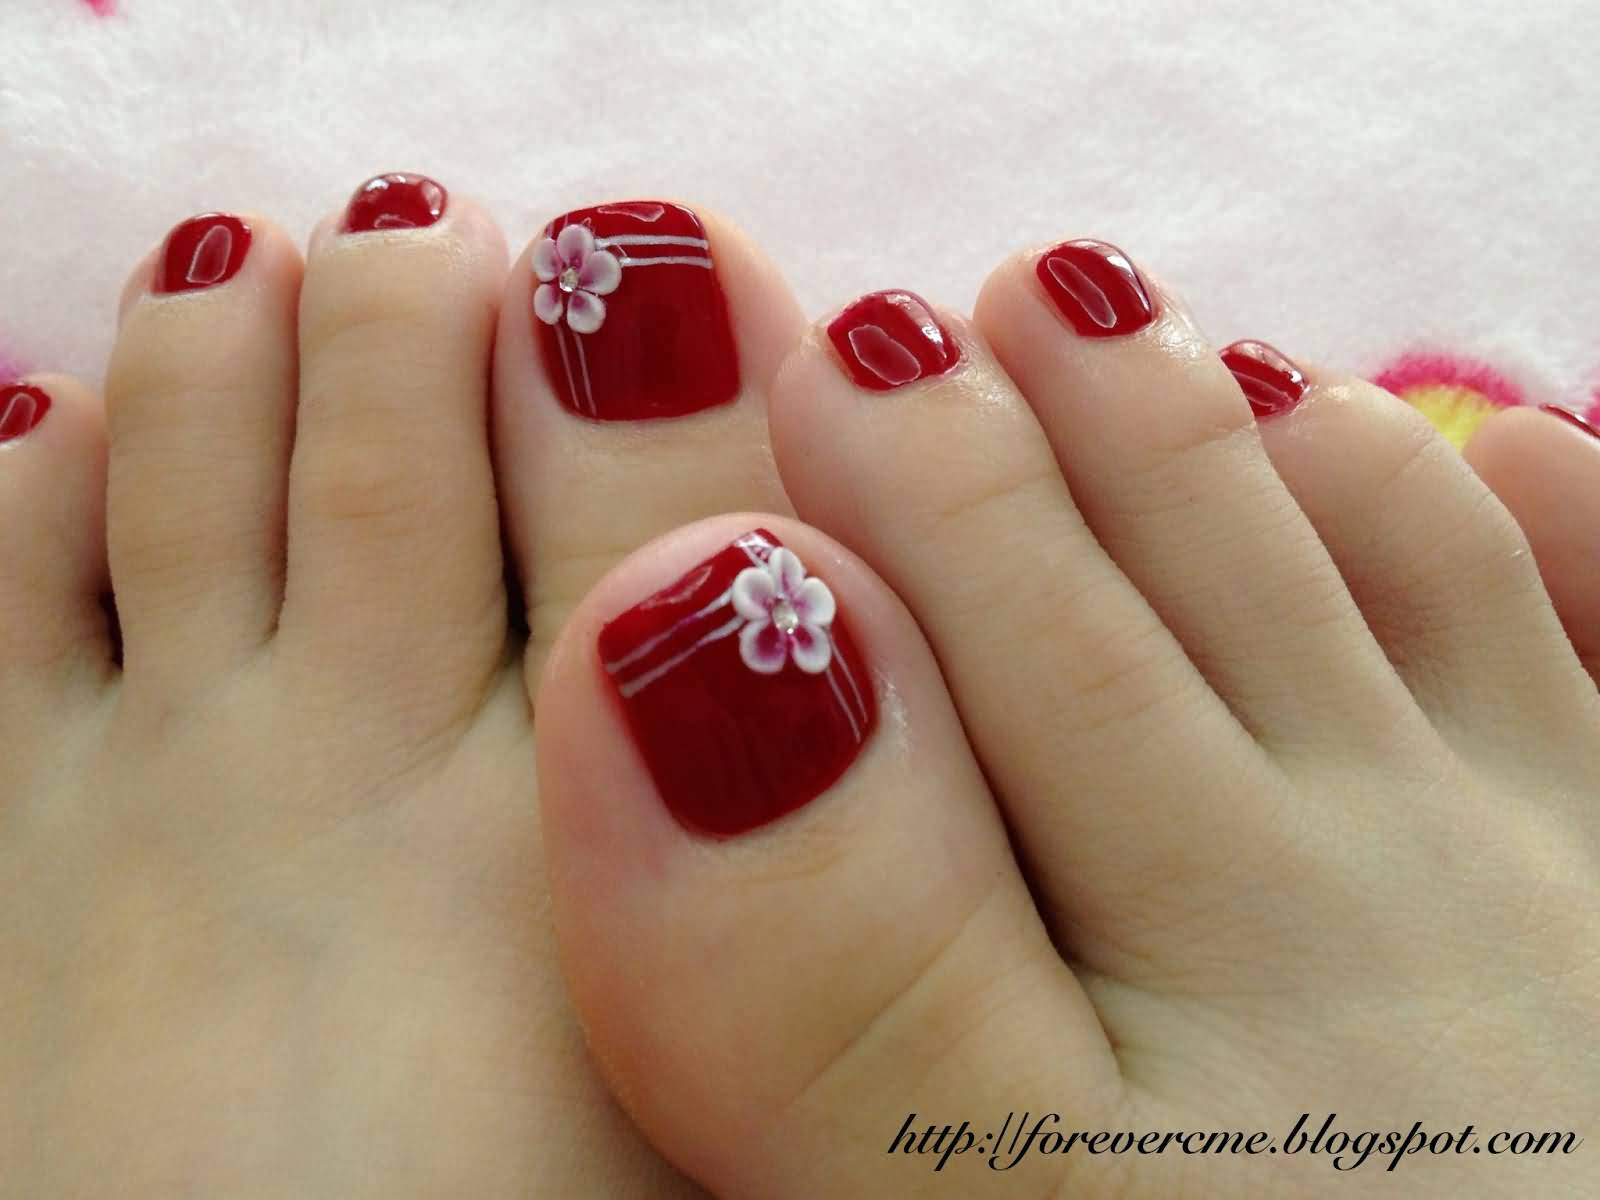 50 most beautiful and stylish flower toe nail art design ideas beautiful red toe nails with white 3d flower nail art prinsesfo Choice Image